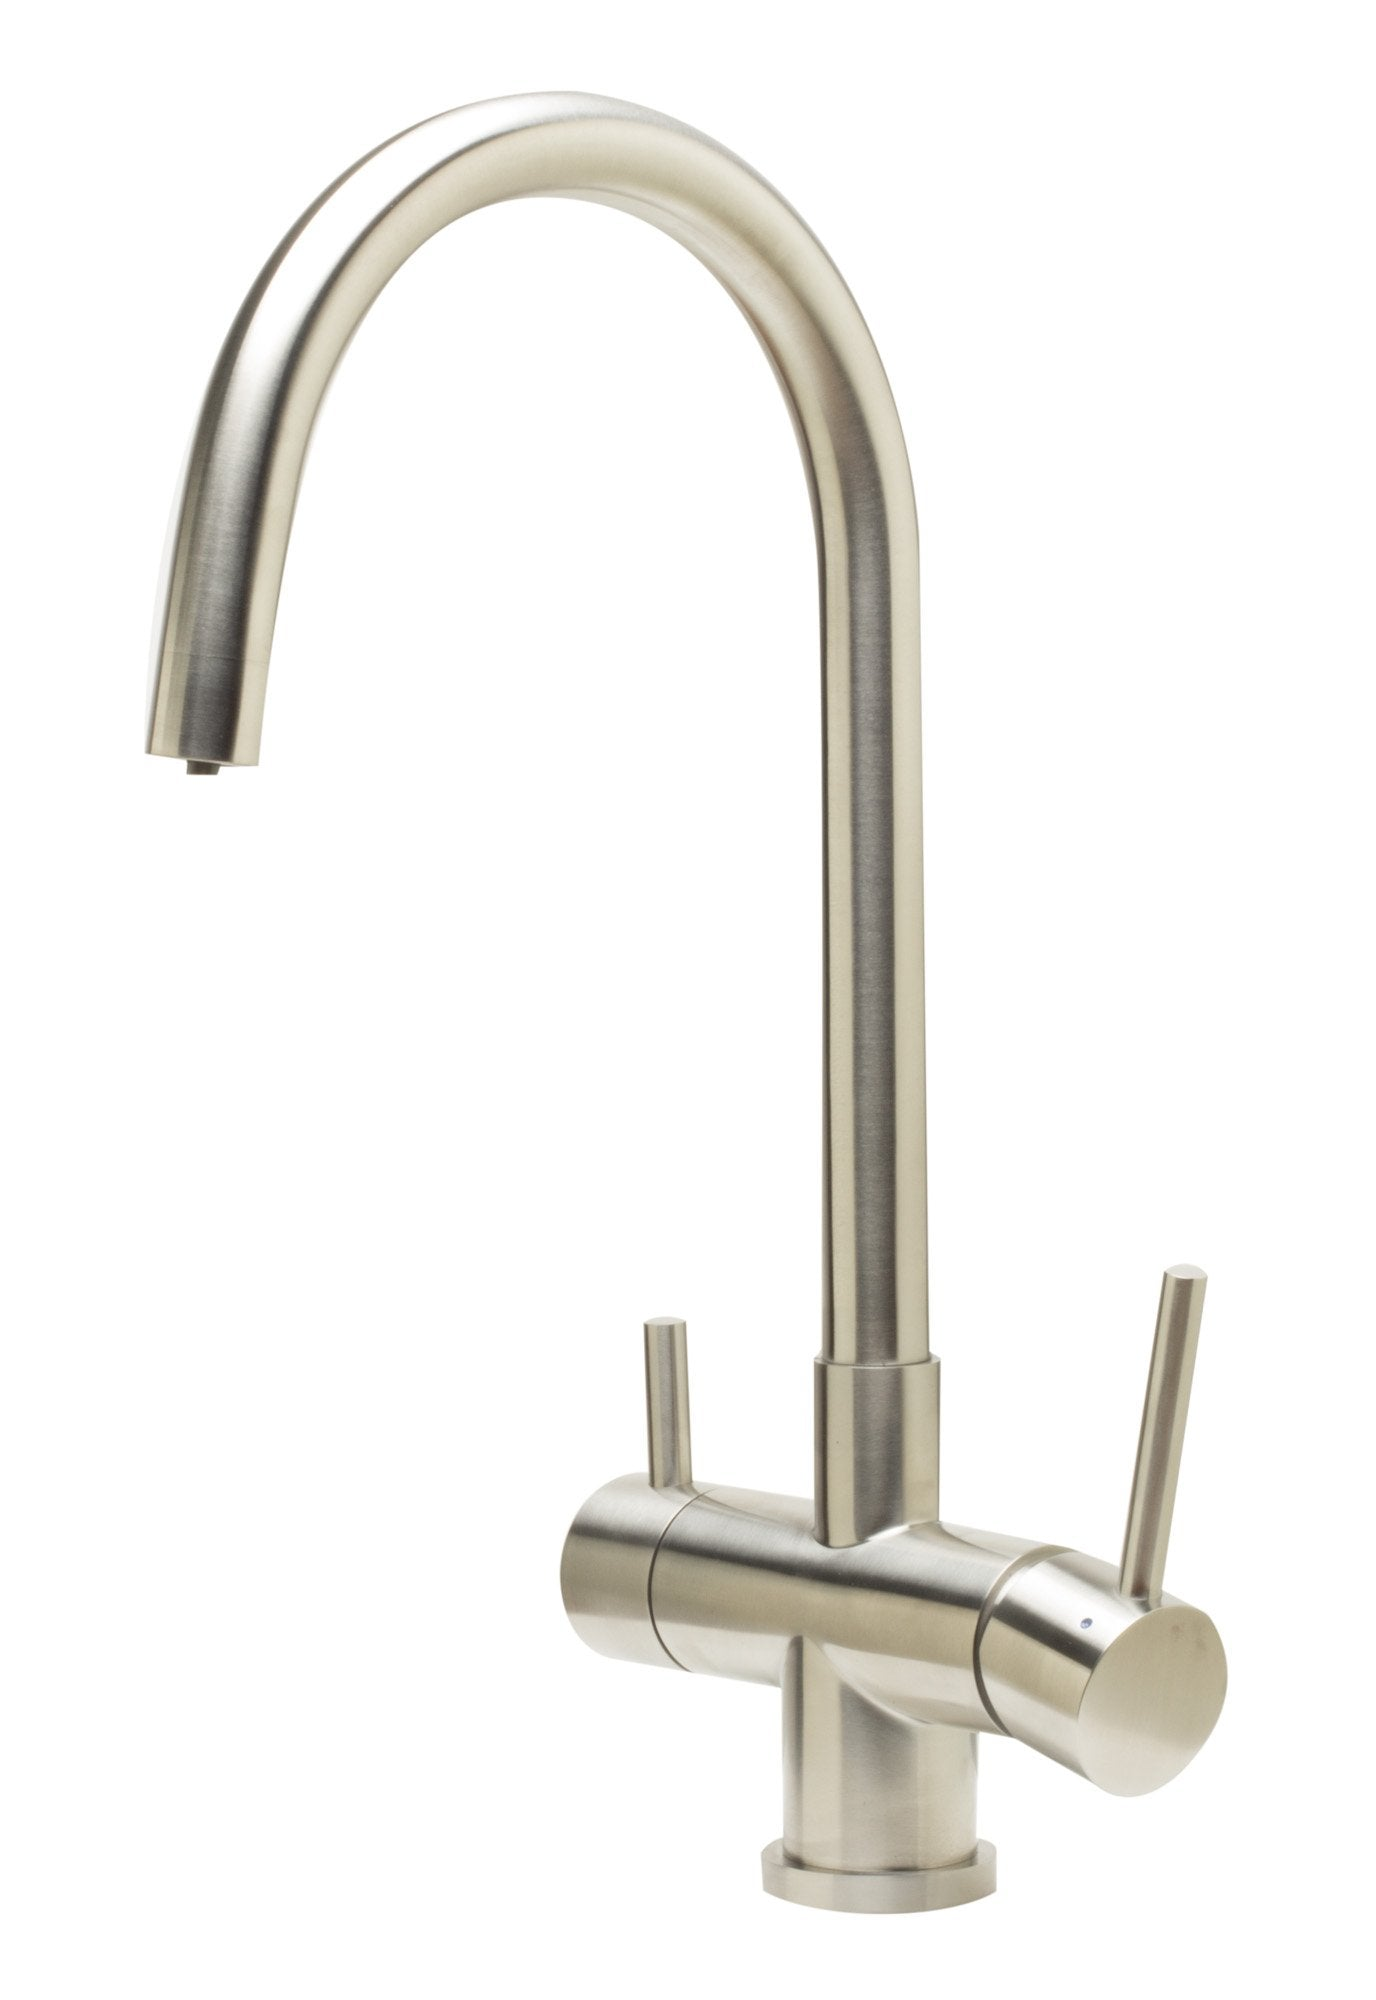 com bar kpf kraus steel lever discontinued handle single kraususa stainless faucet kitchen solid